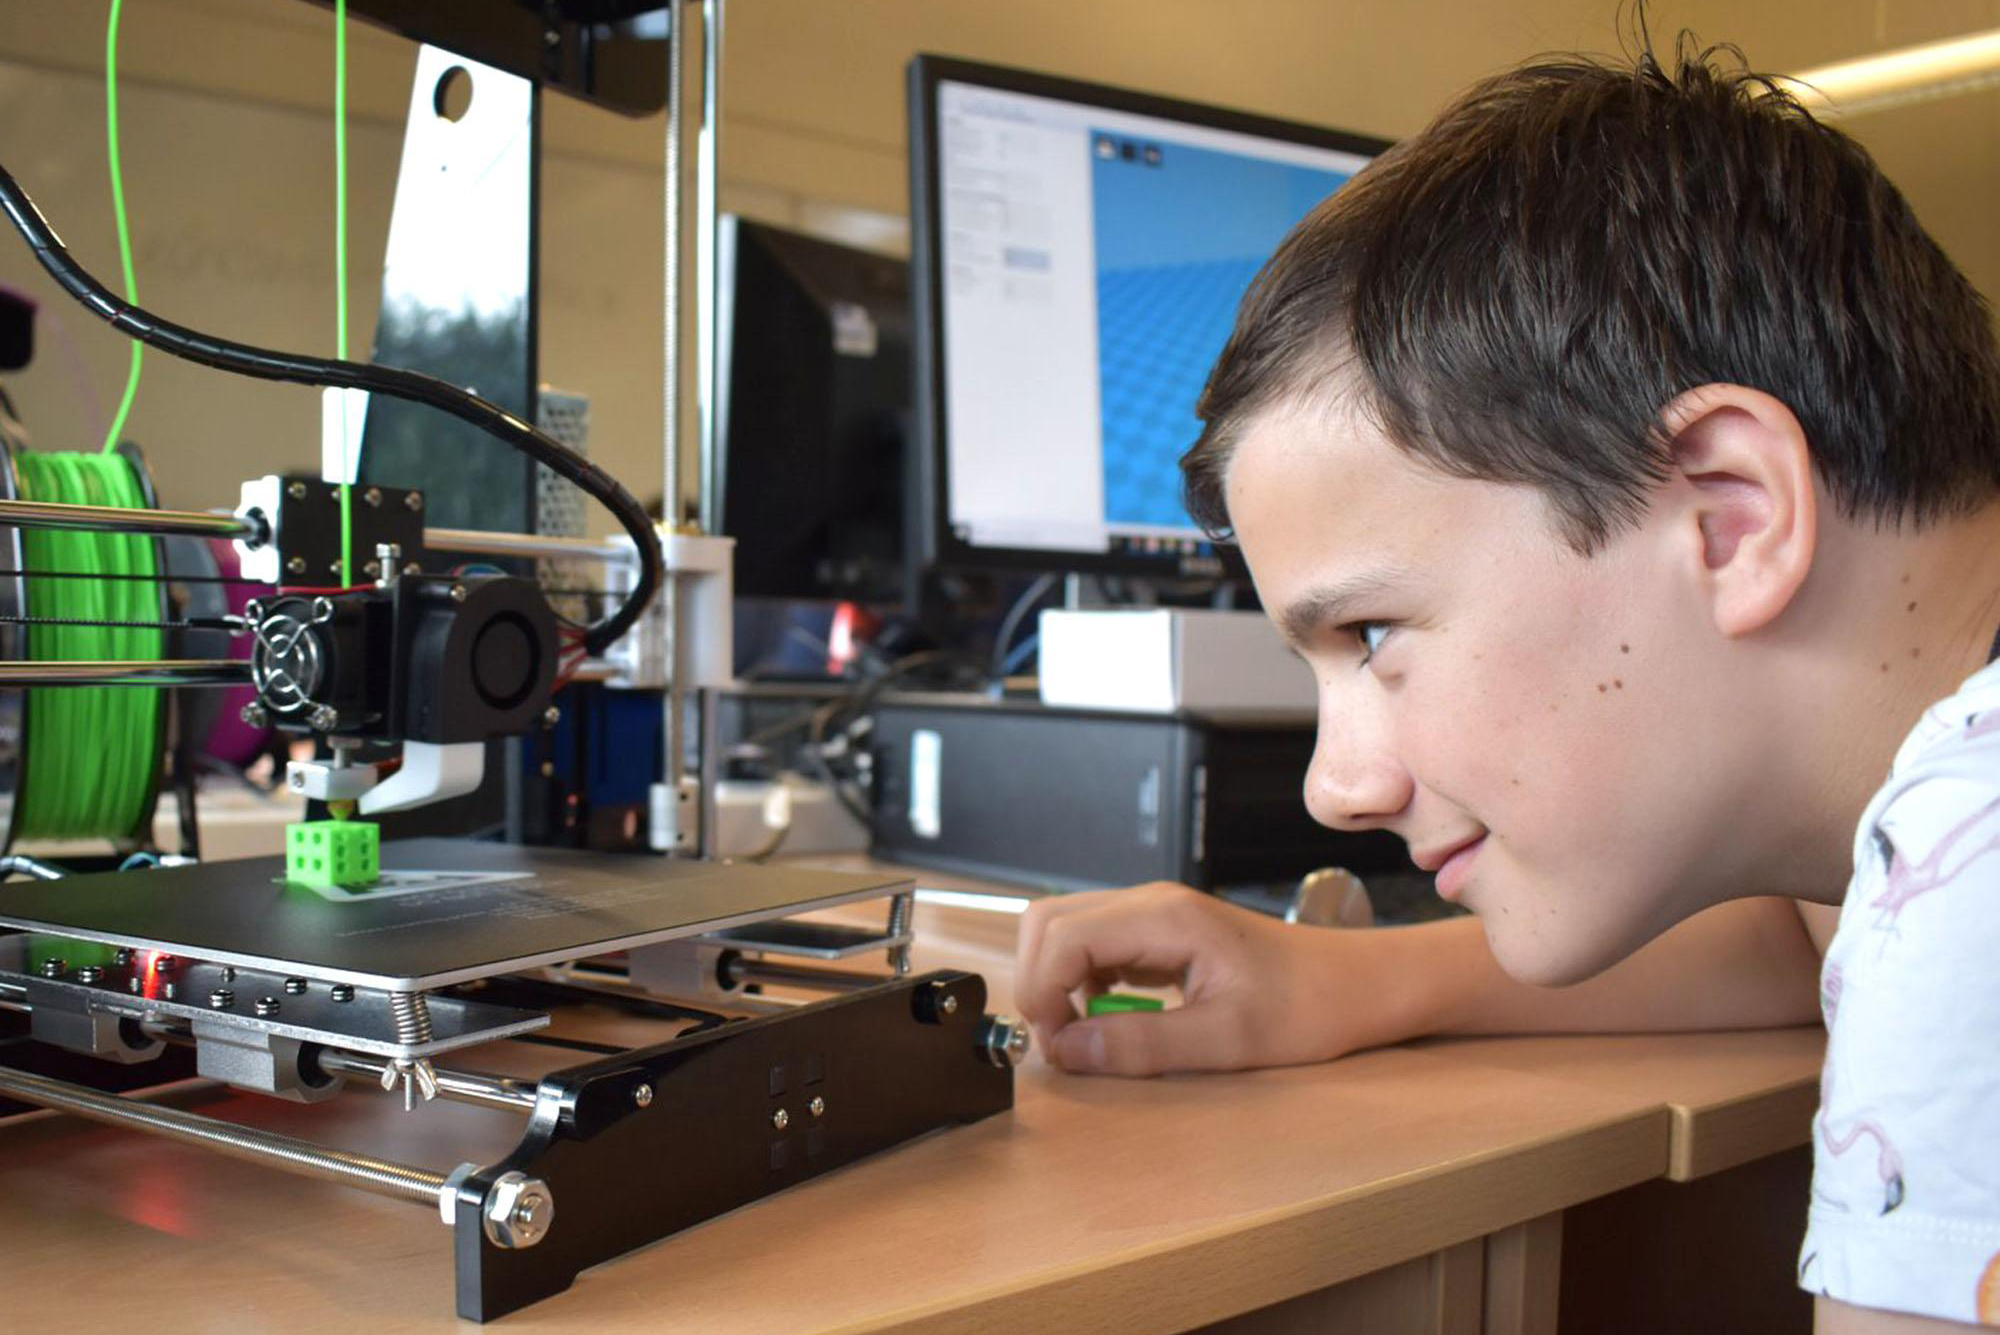 Teen boy looking at 3D printer